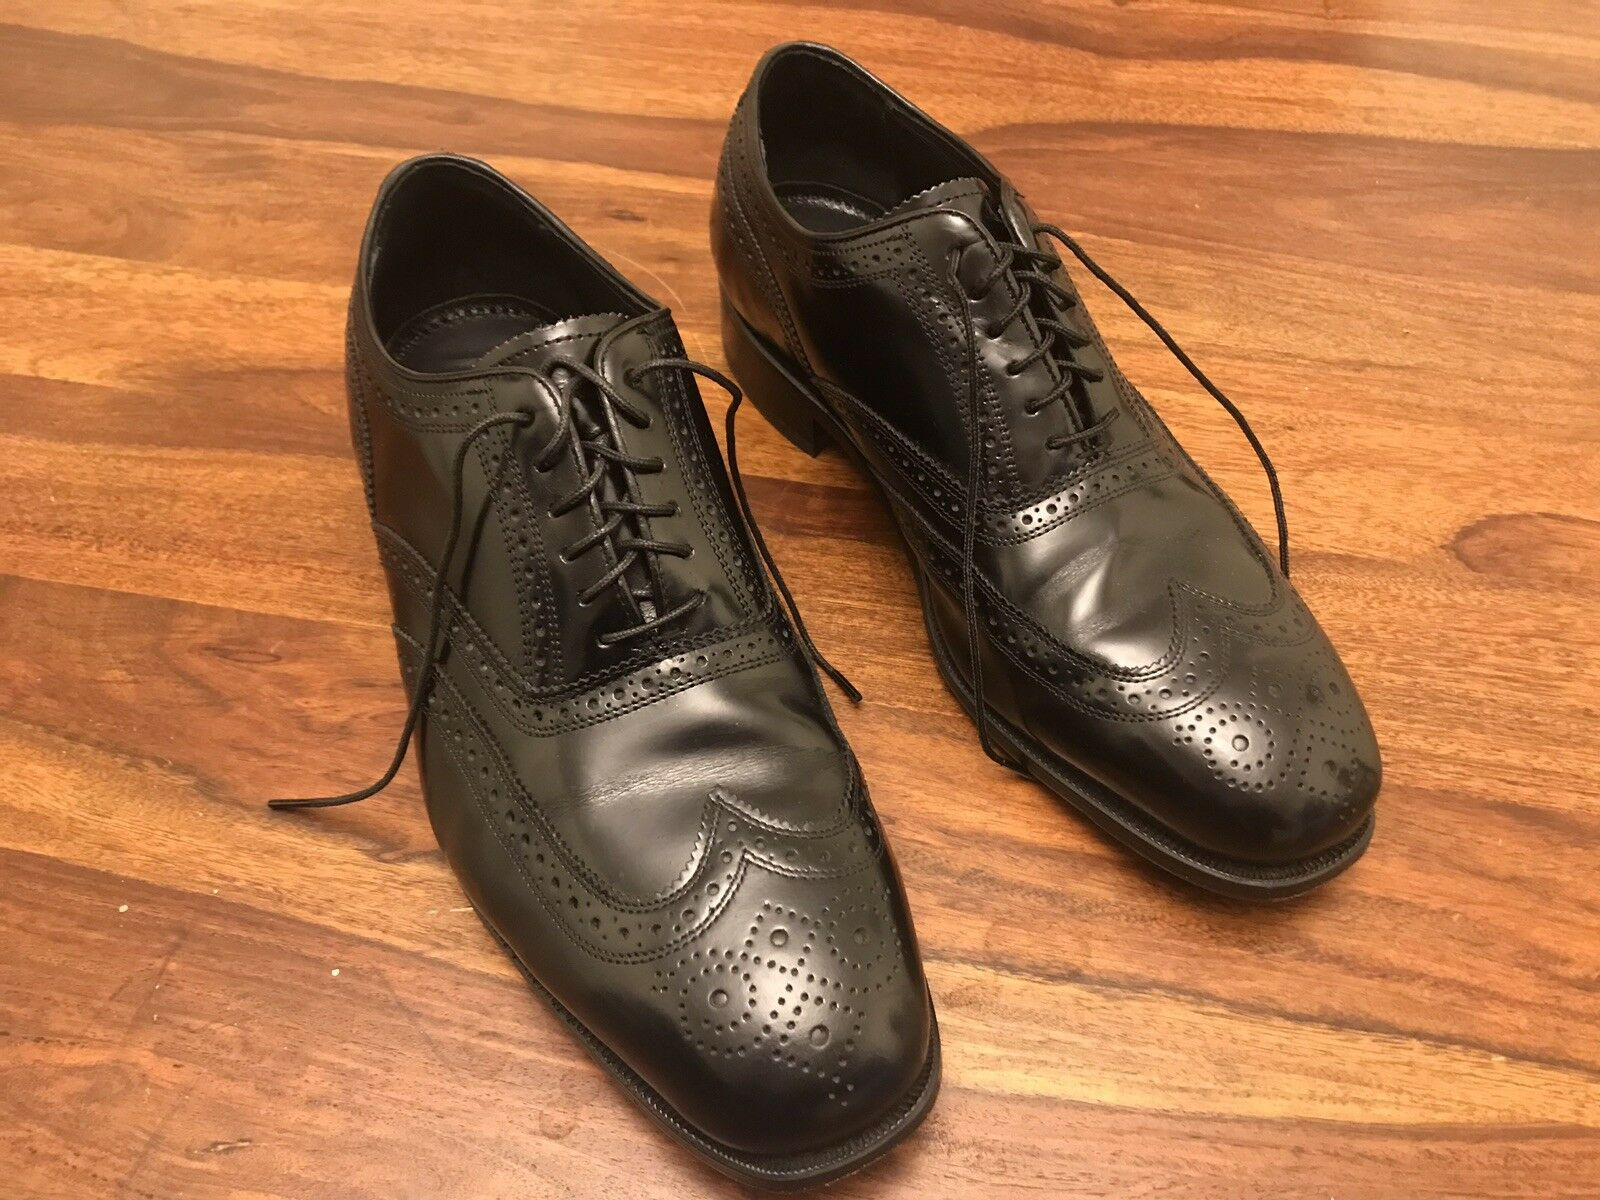 Men's Florsheim shoes Black Brogues Oxfords  Leather Made In India UK10